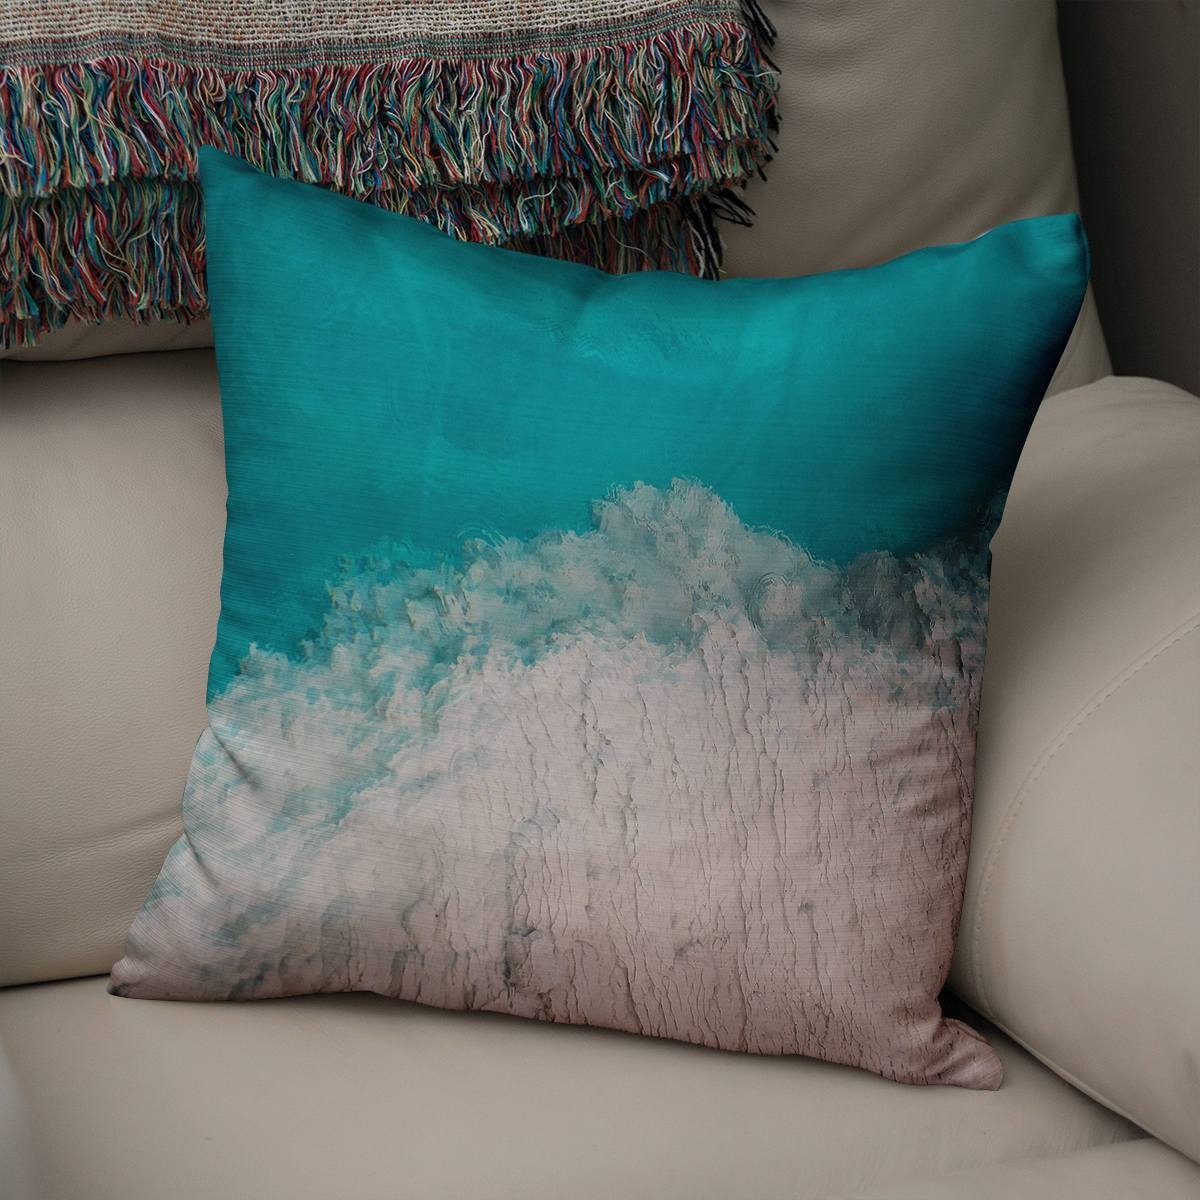 Abstract Mineral Texture II Throw Pillow Cover Lost in Nature